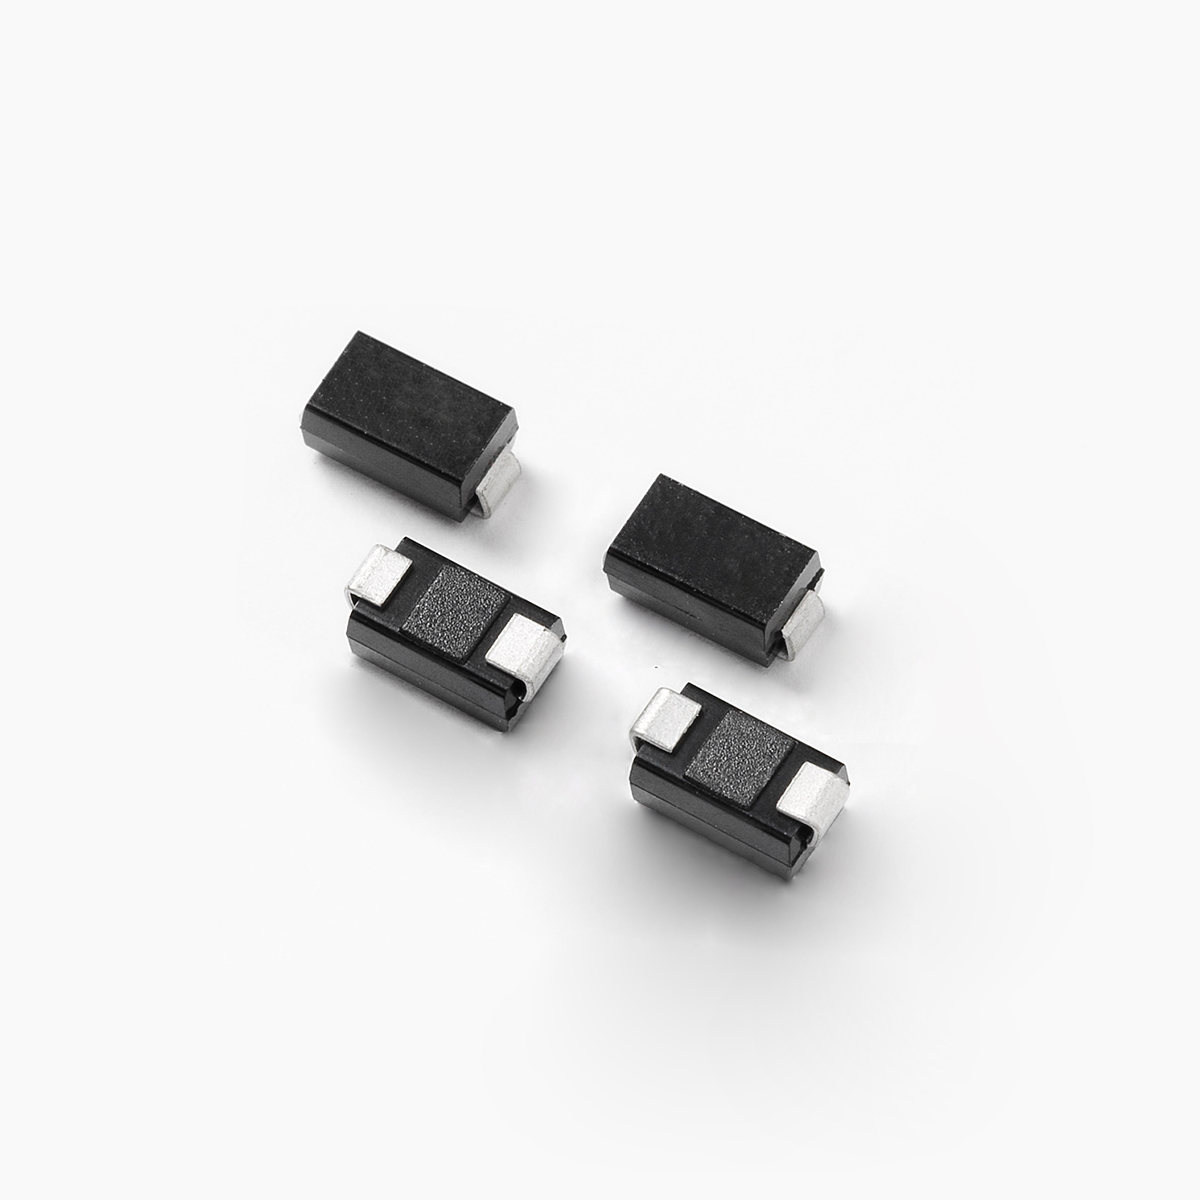 Littelfuse SMBJ24A Uni-Directional TVS Diode 600W 2-Pin DO-214AA x25 pieces